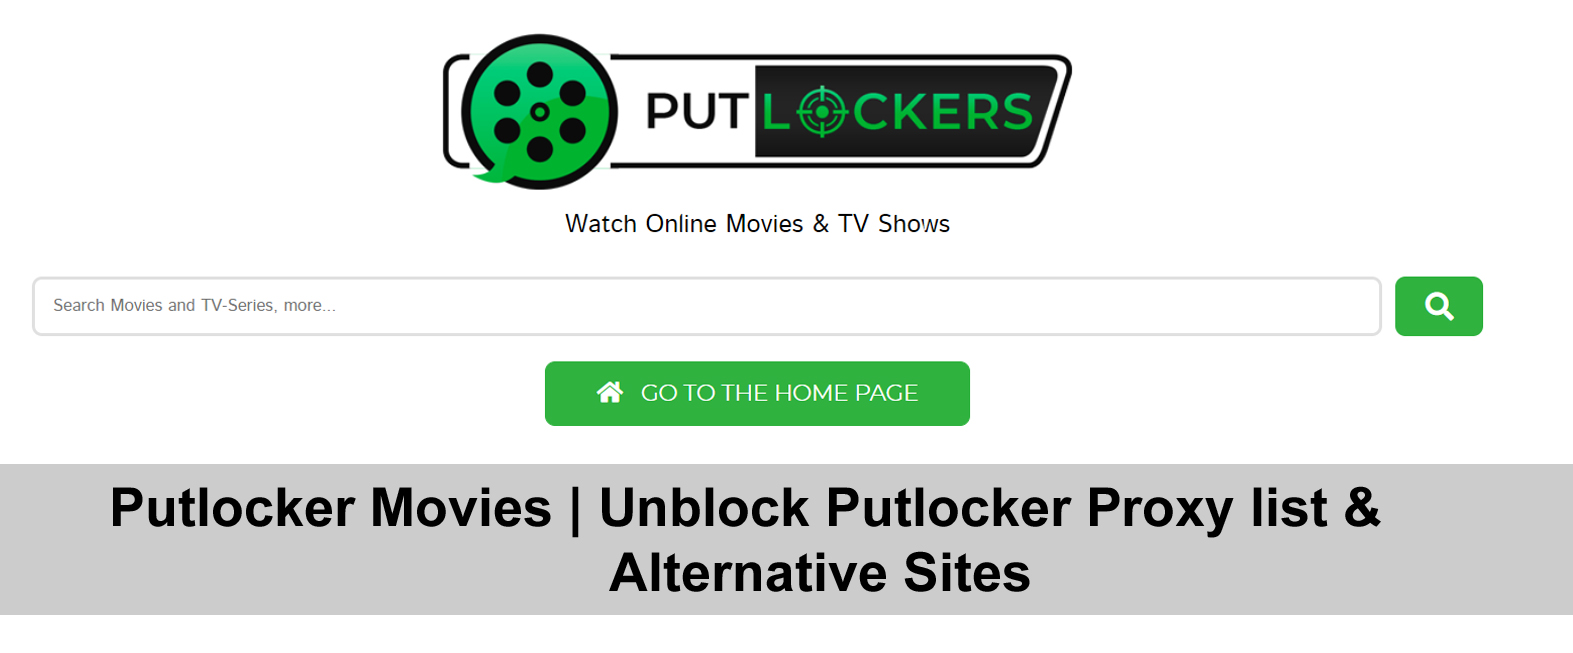 Putlocker Movies | Unblock Putlocker Proxy list & Alternative Sites